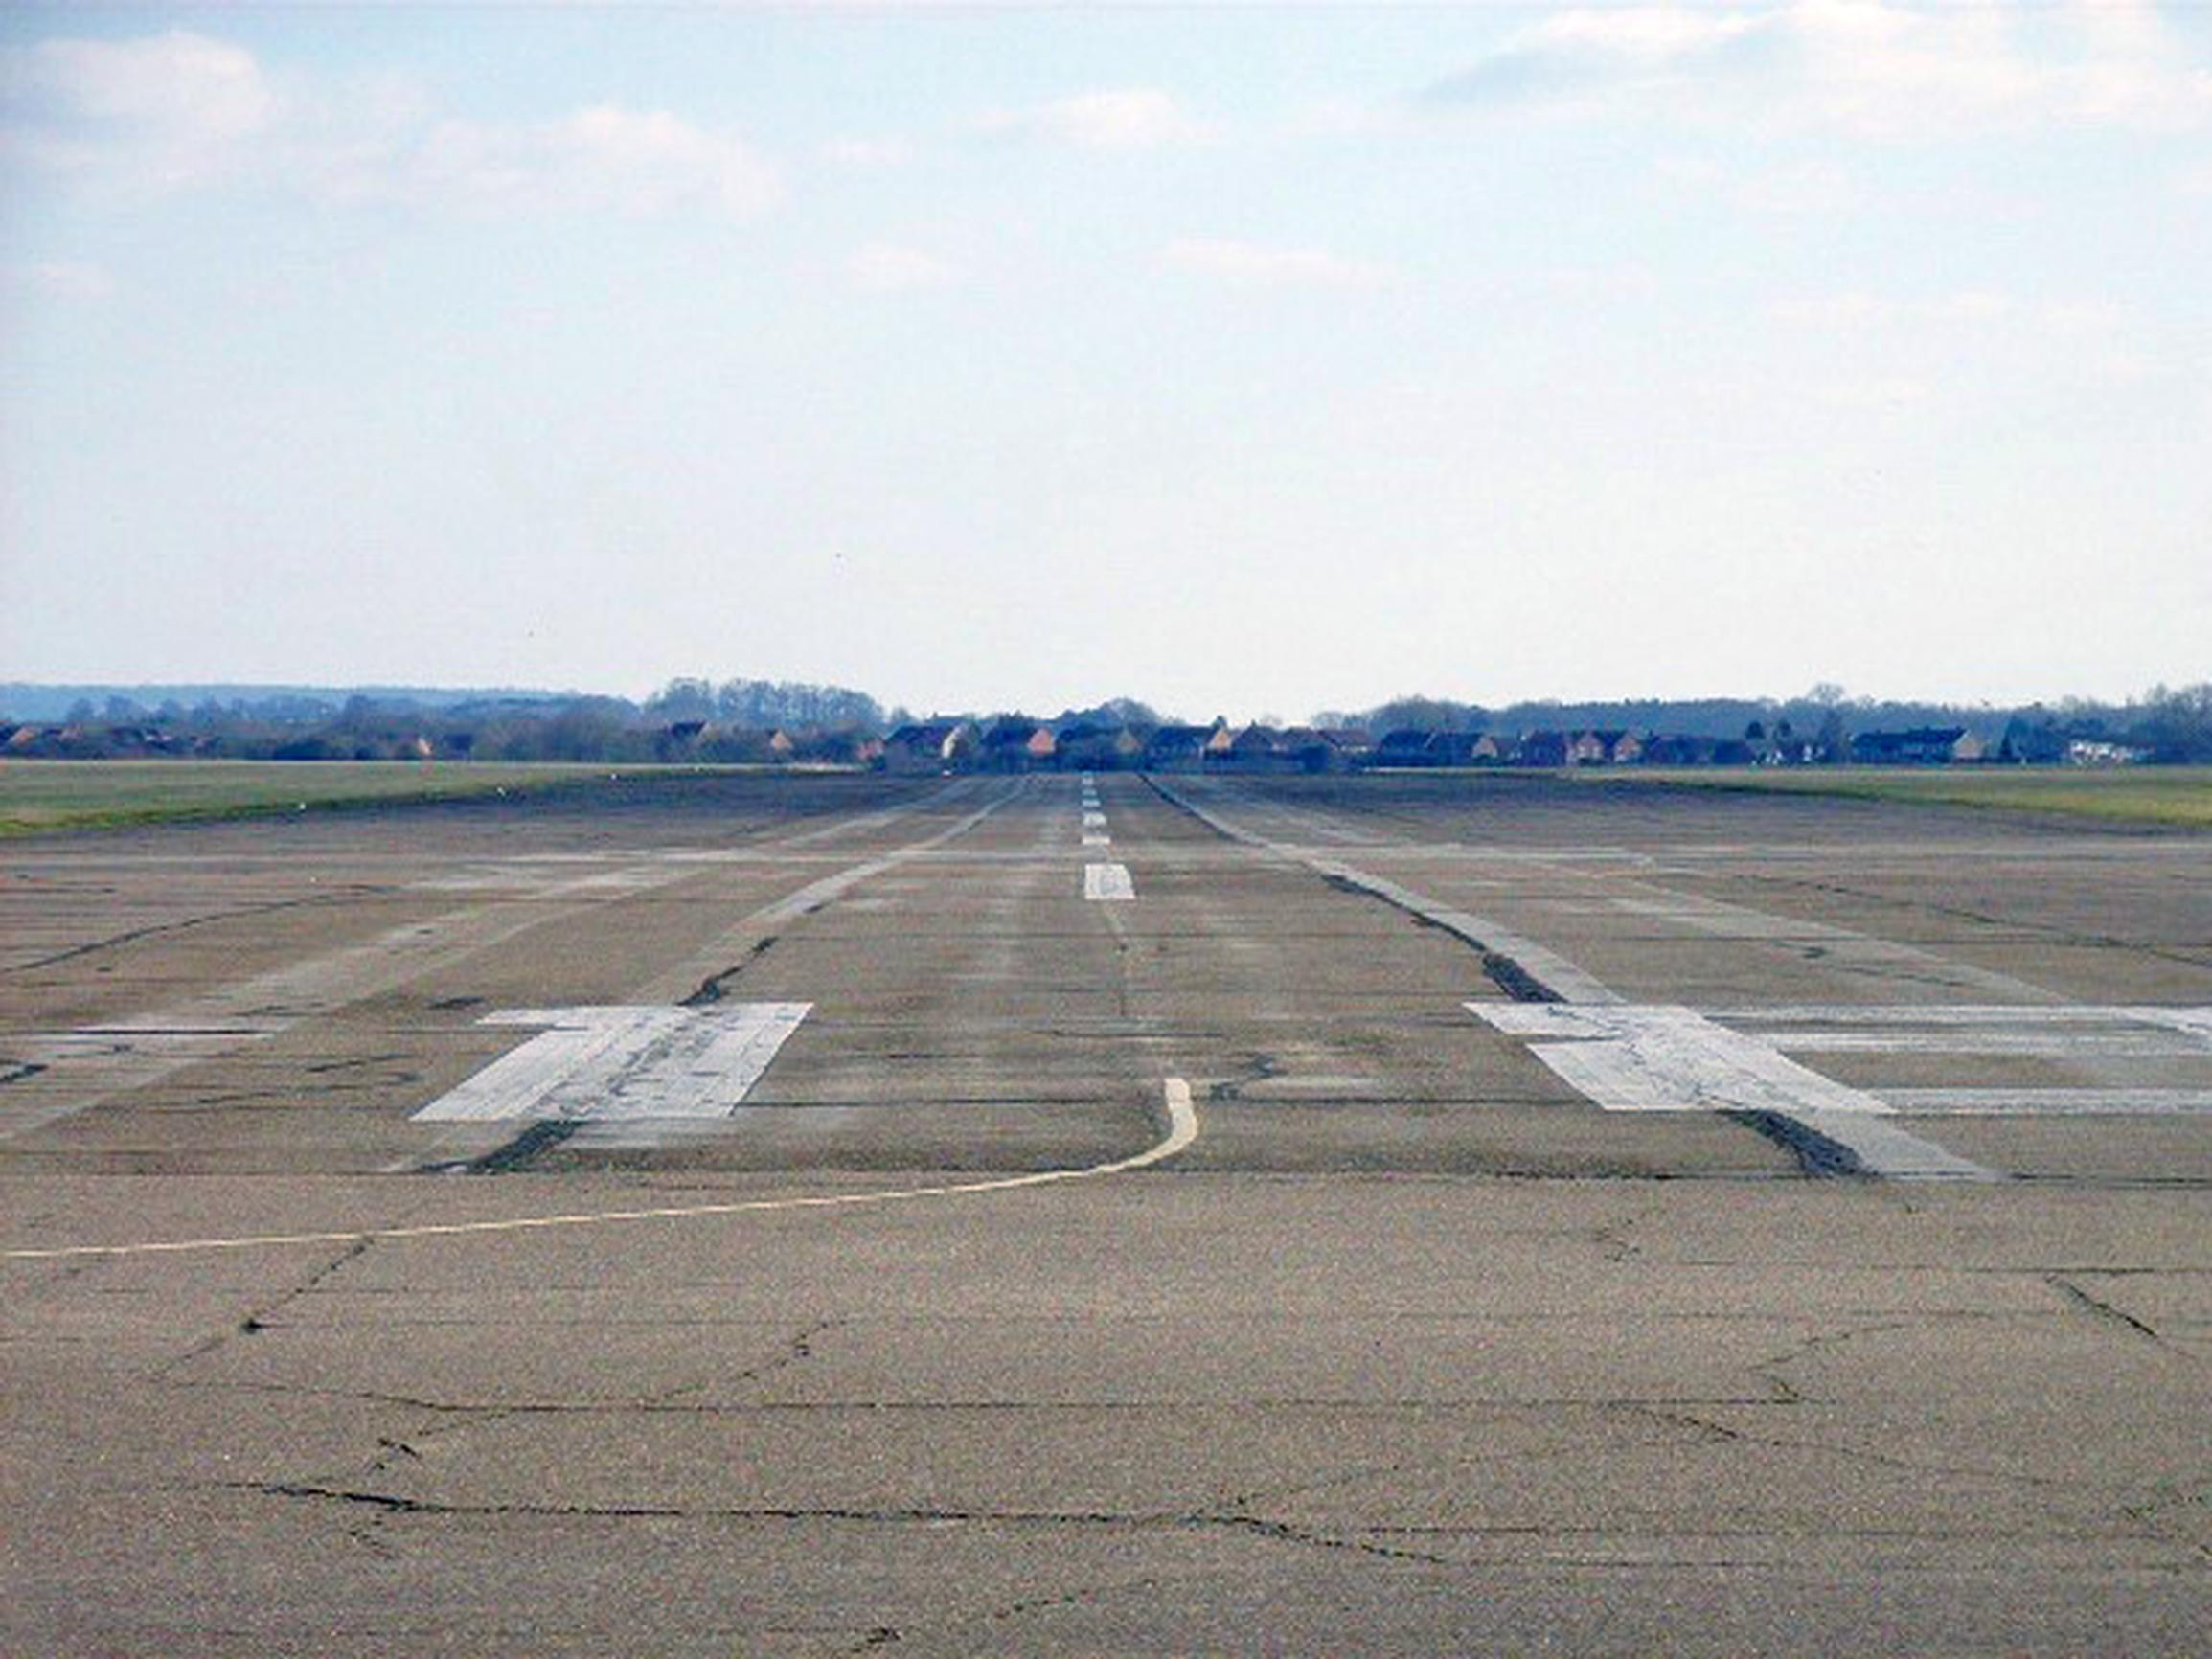 There is strong opposition to housing on Chalgrove Airfield